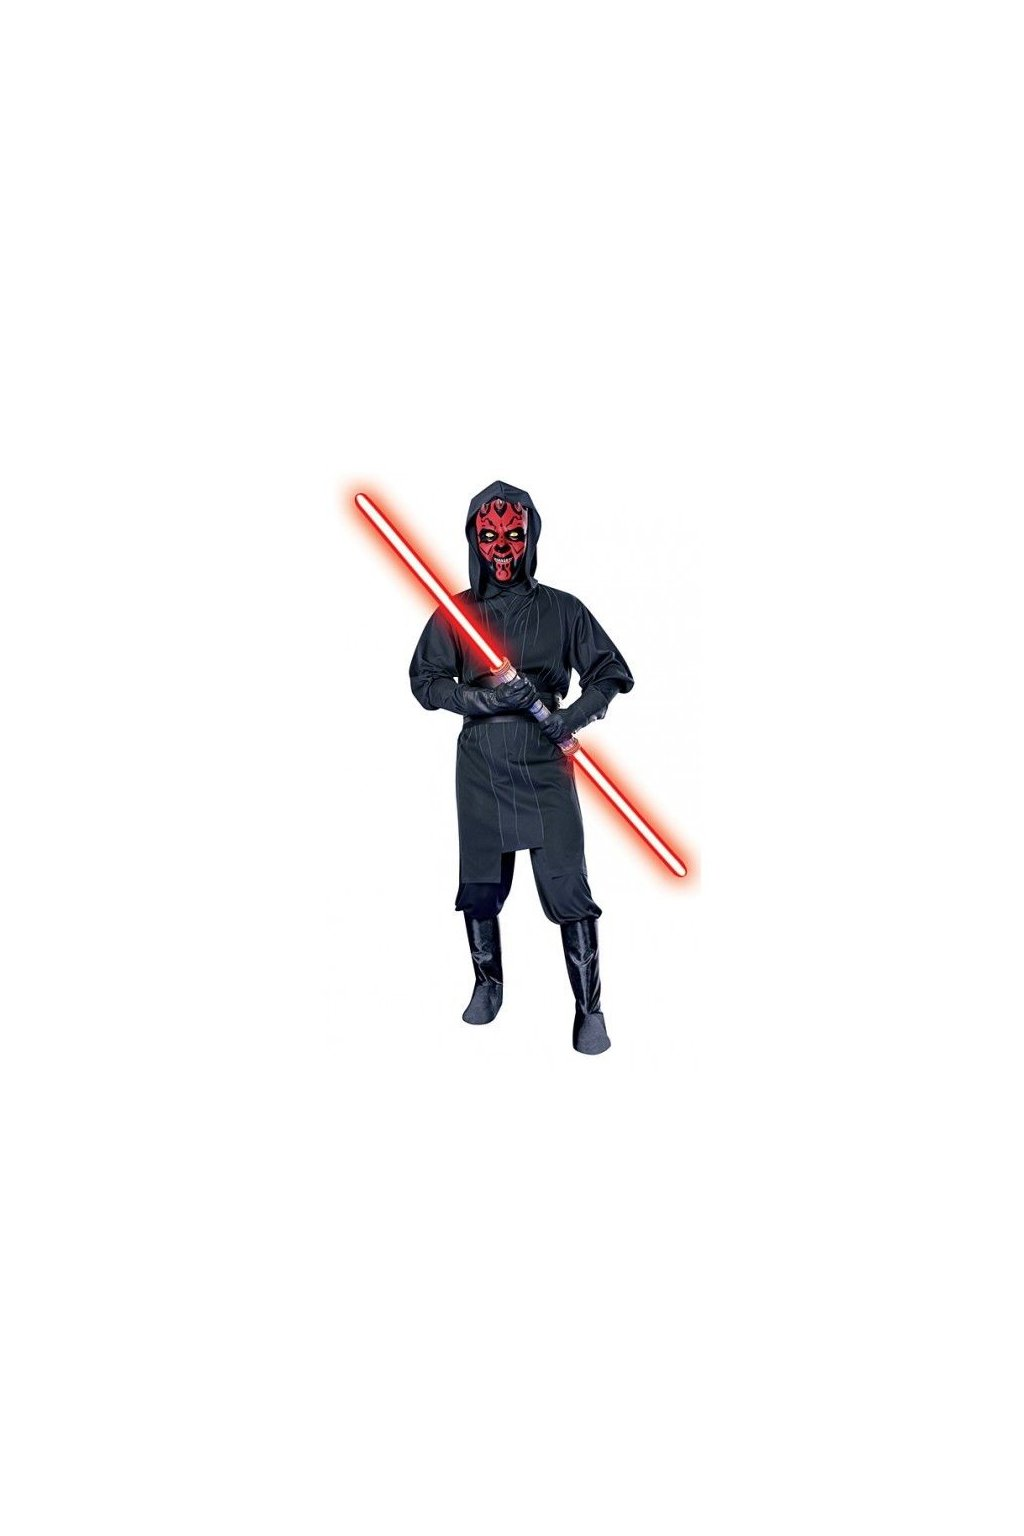 DARTH MAUL licence